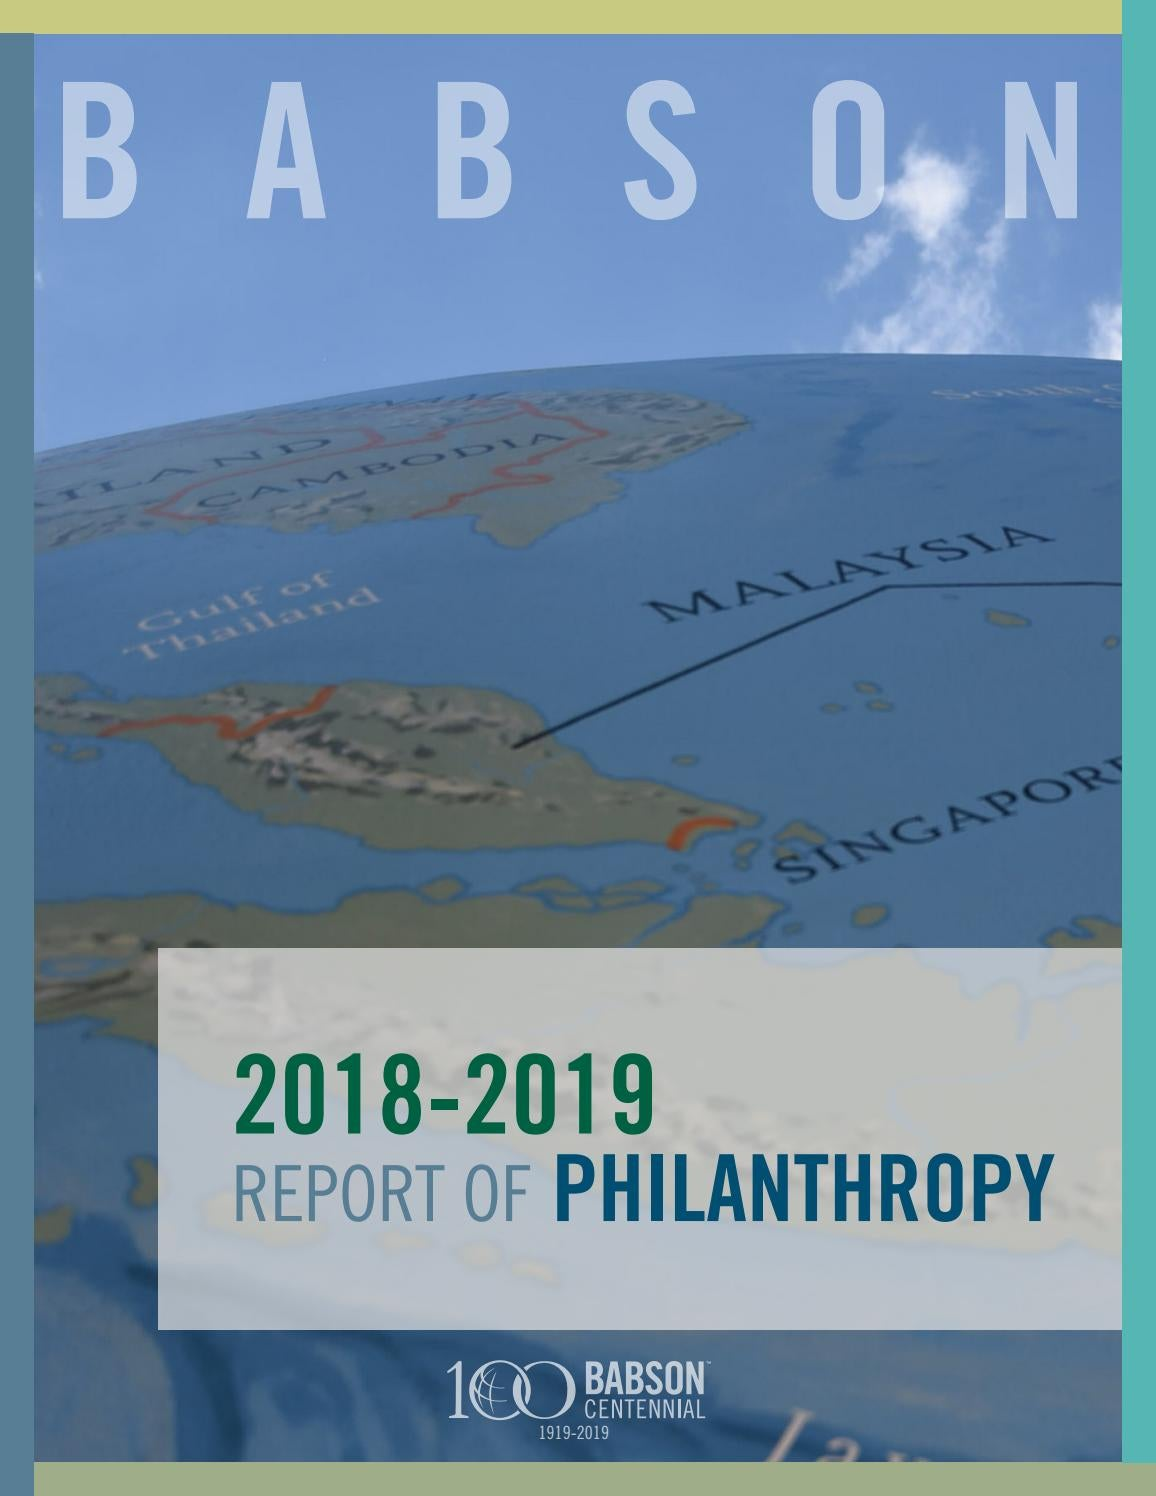 Babson College Report of Philanthropy 2018-2019 by Babson